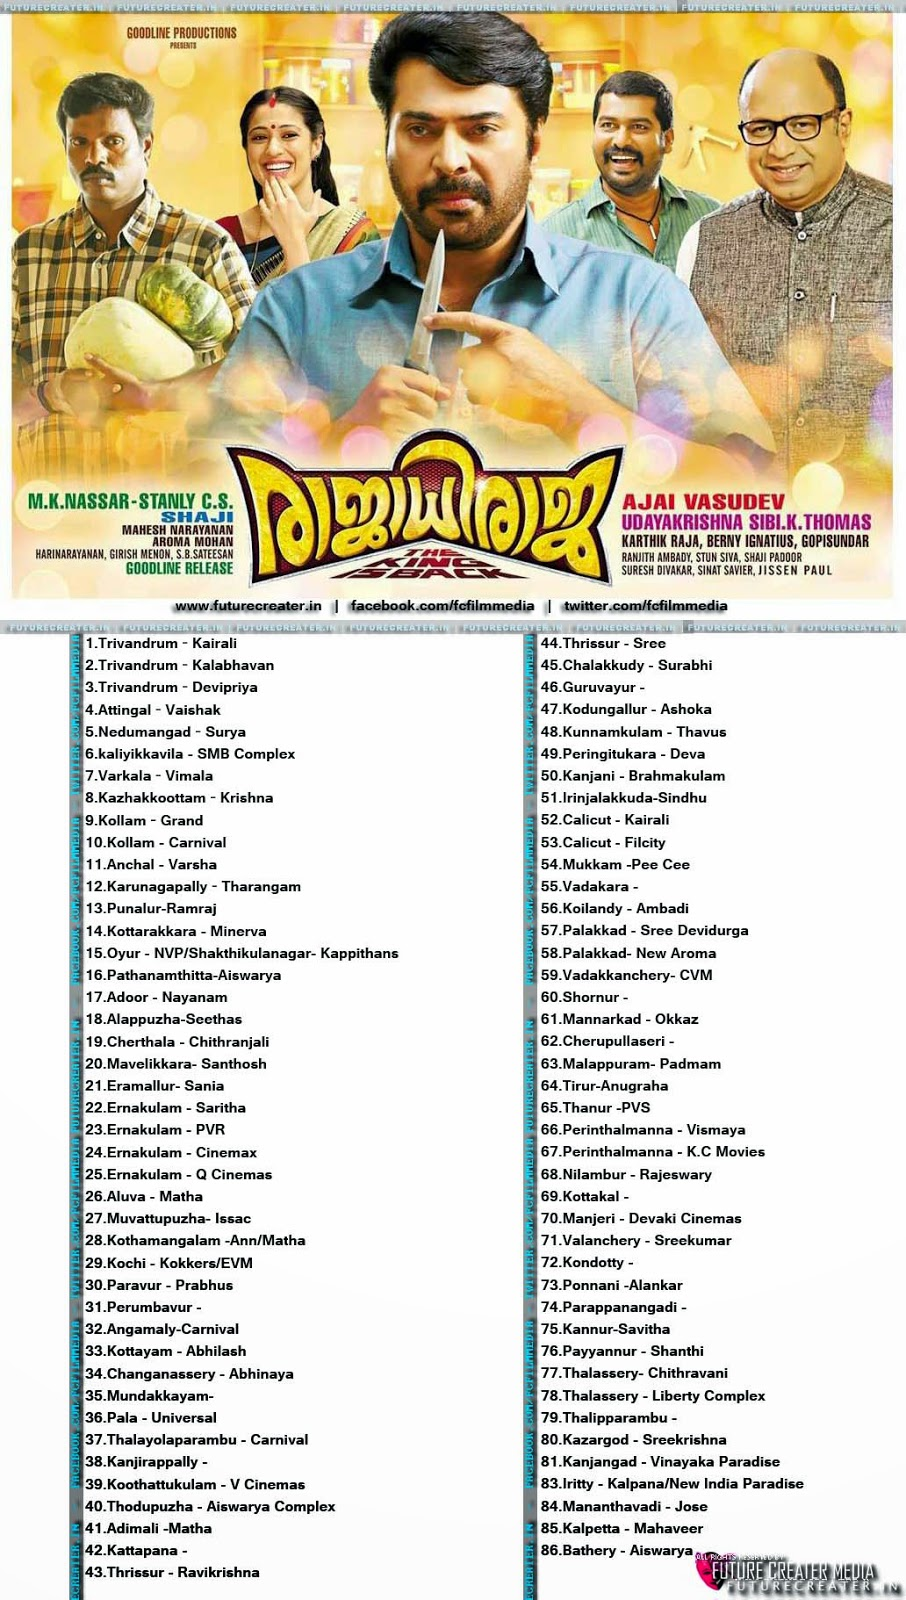 Rajadhi Raja Releasing Centers ,Theater List, Preview